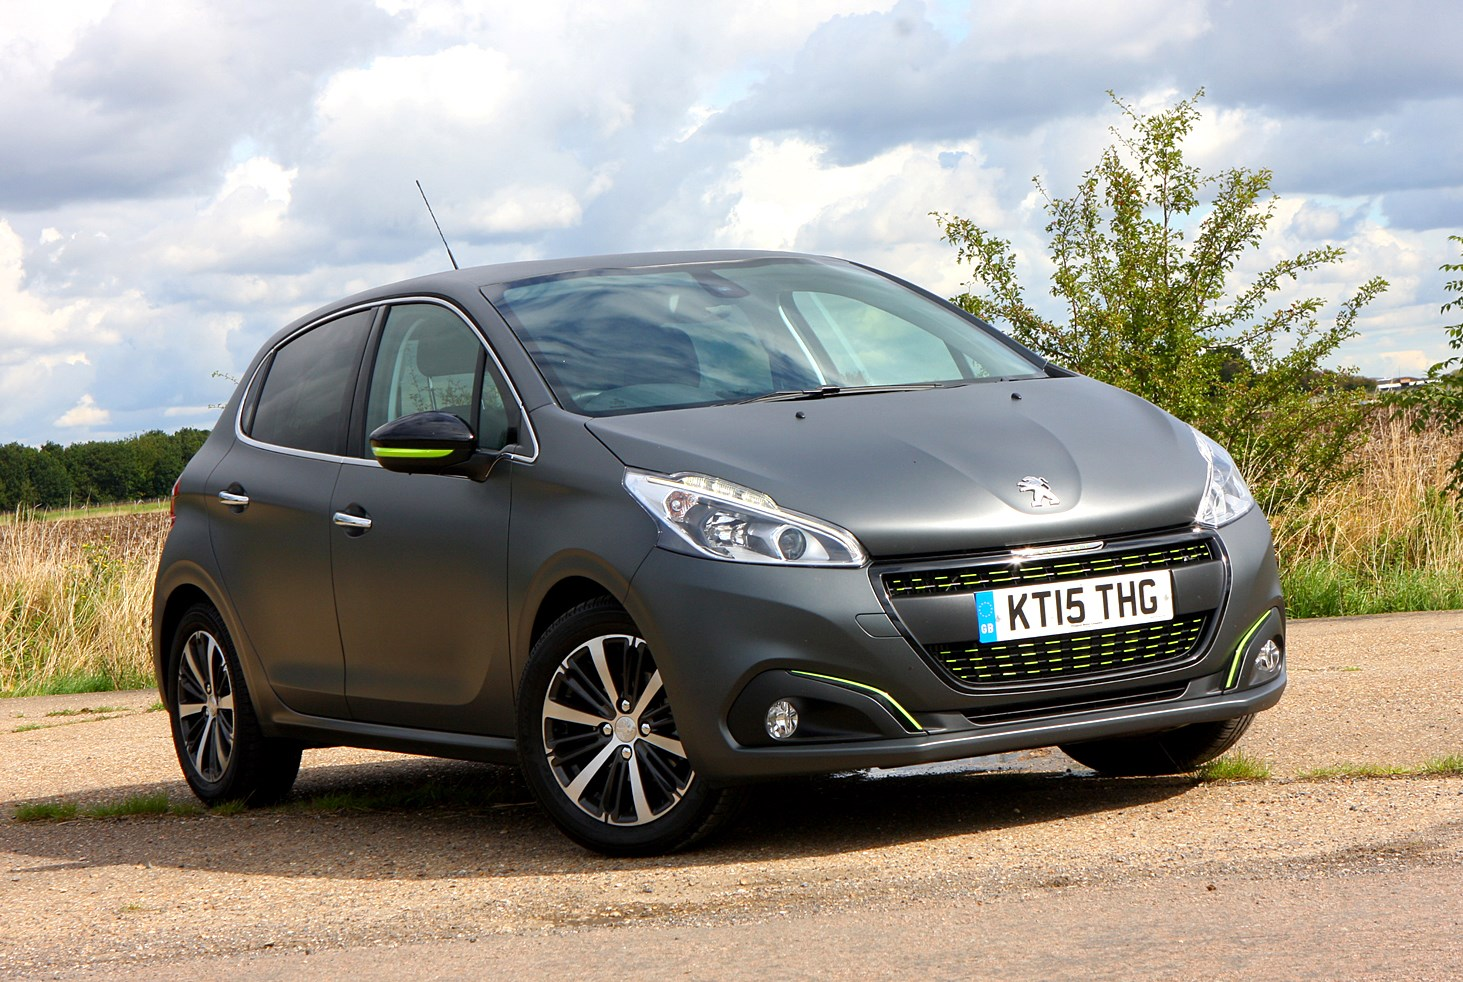 Peugeot 208 Hatchback (2012 - ) Photos